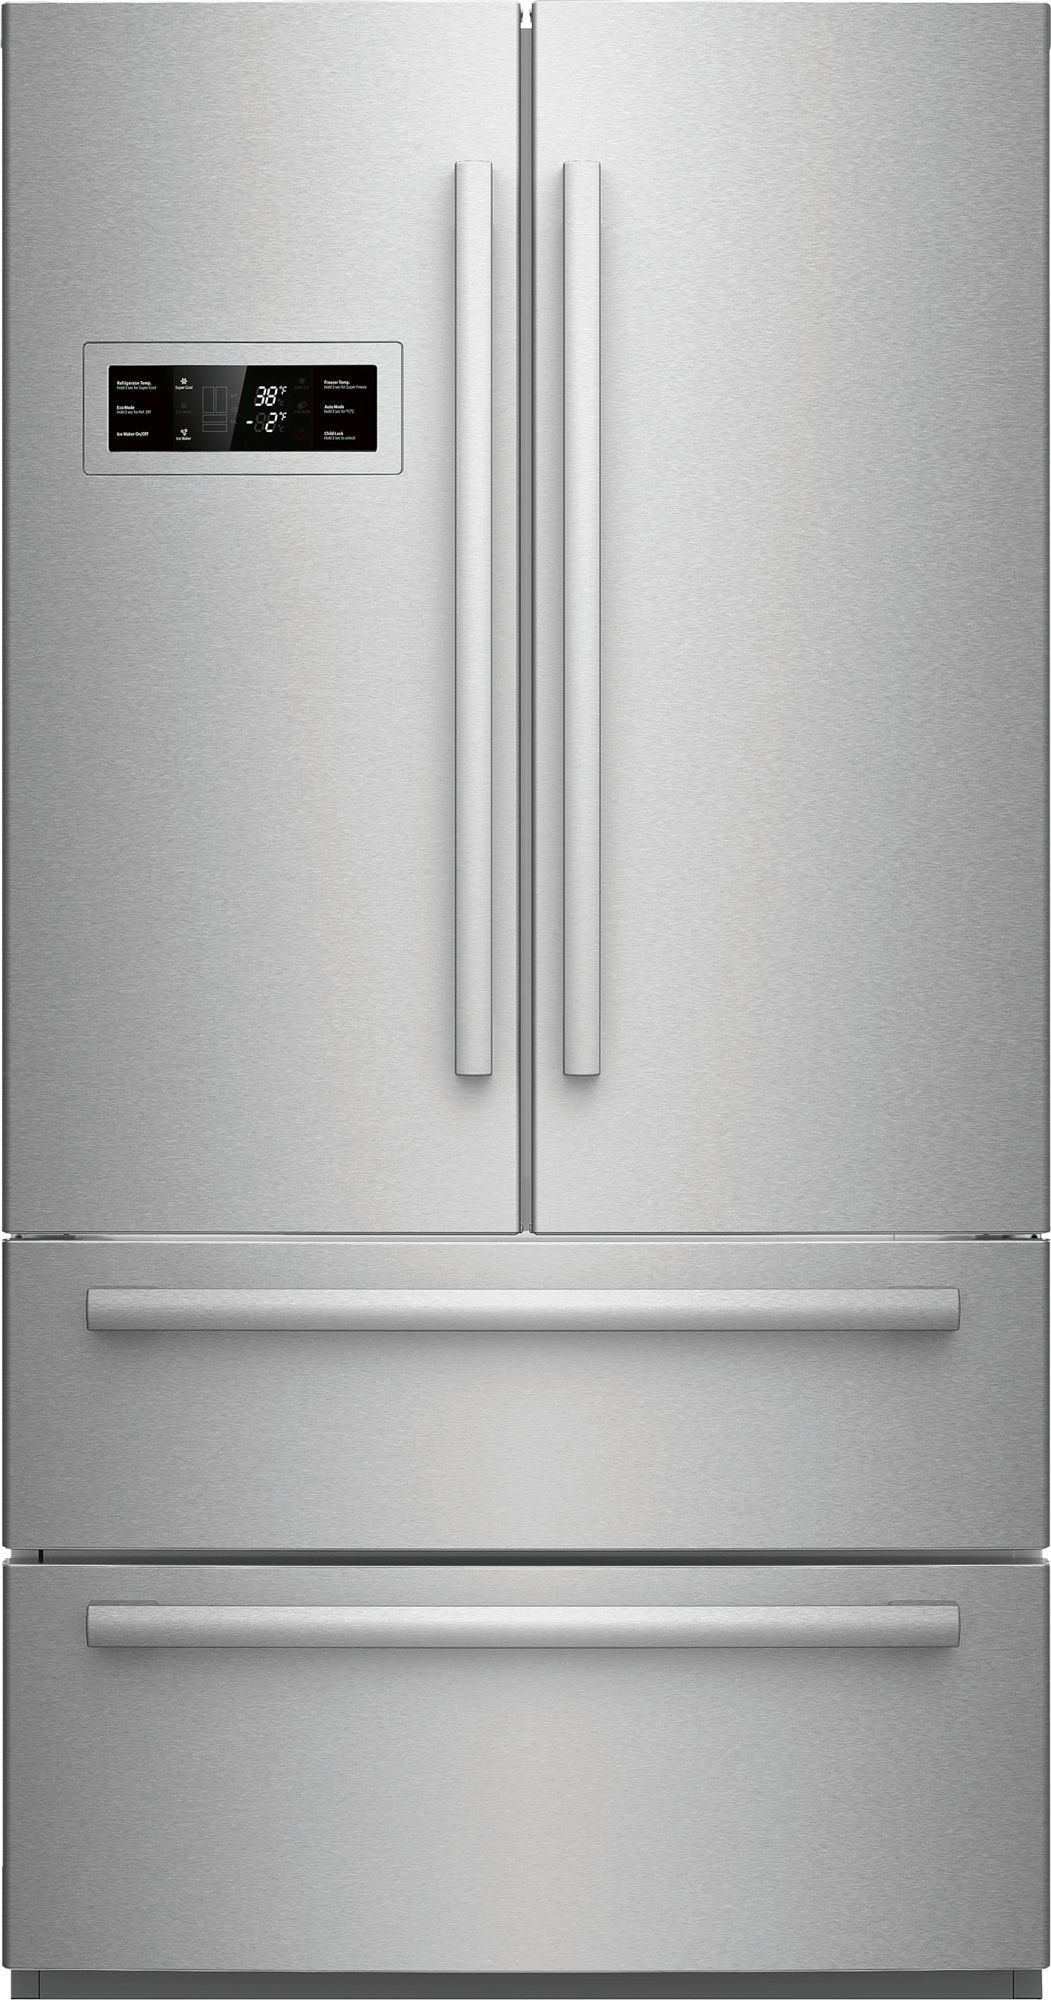 Ft. Counter Depth French Door Refrigerator Stainless Steel ...